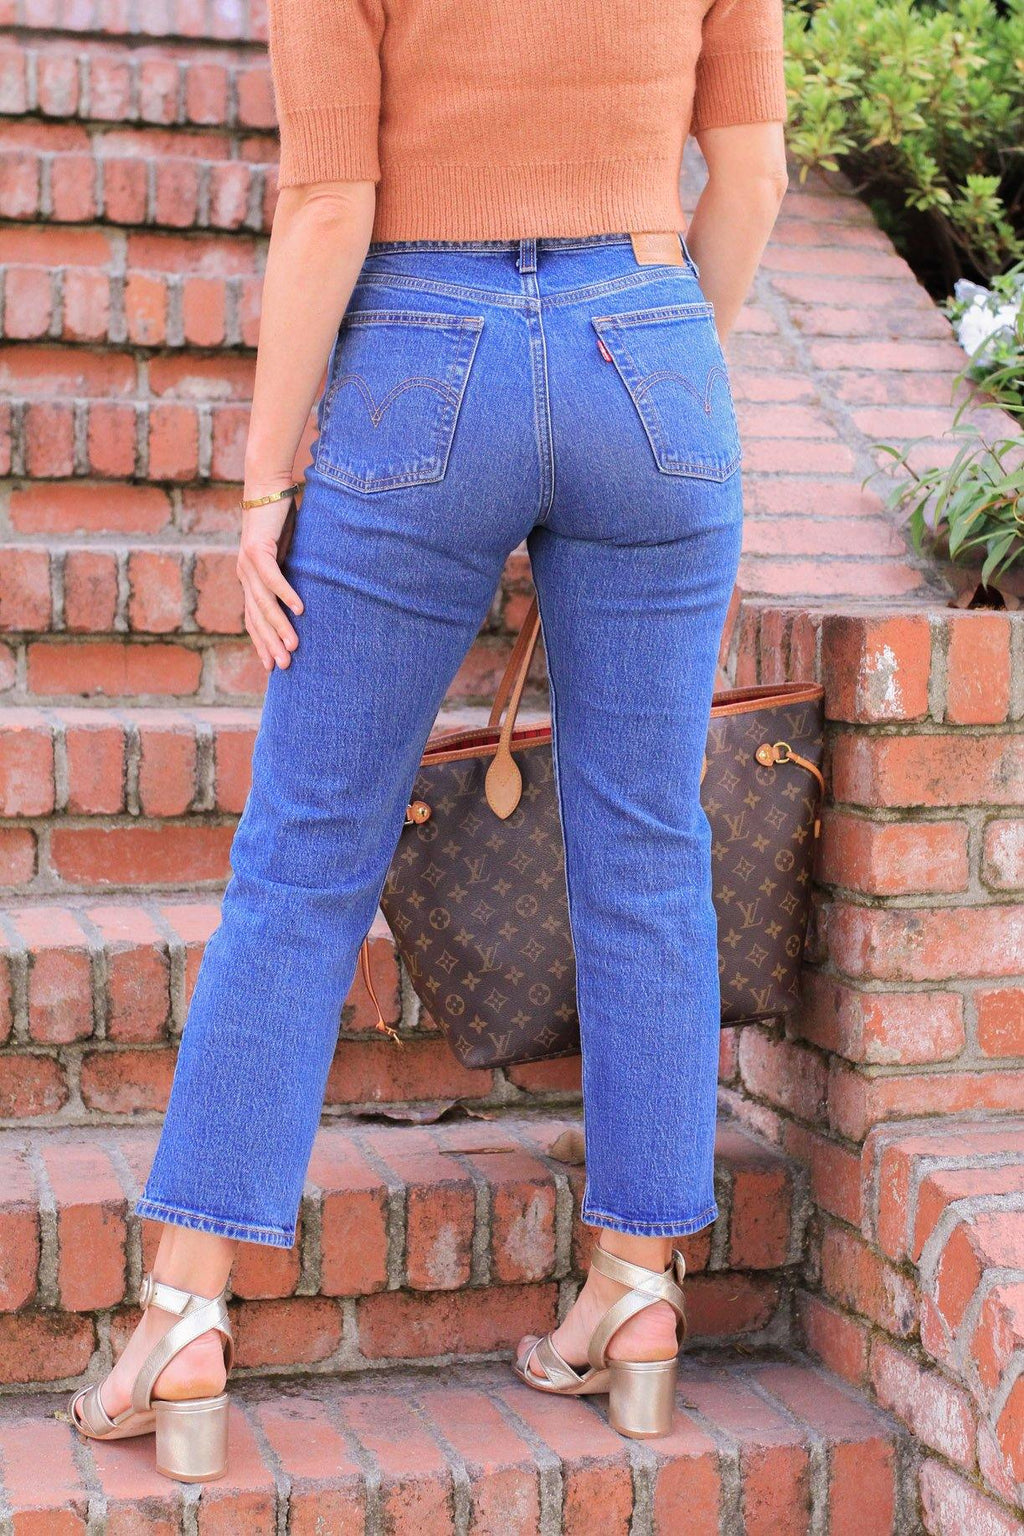 Levi's Wedgie Jive Sound Jeans